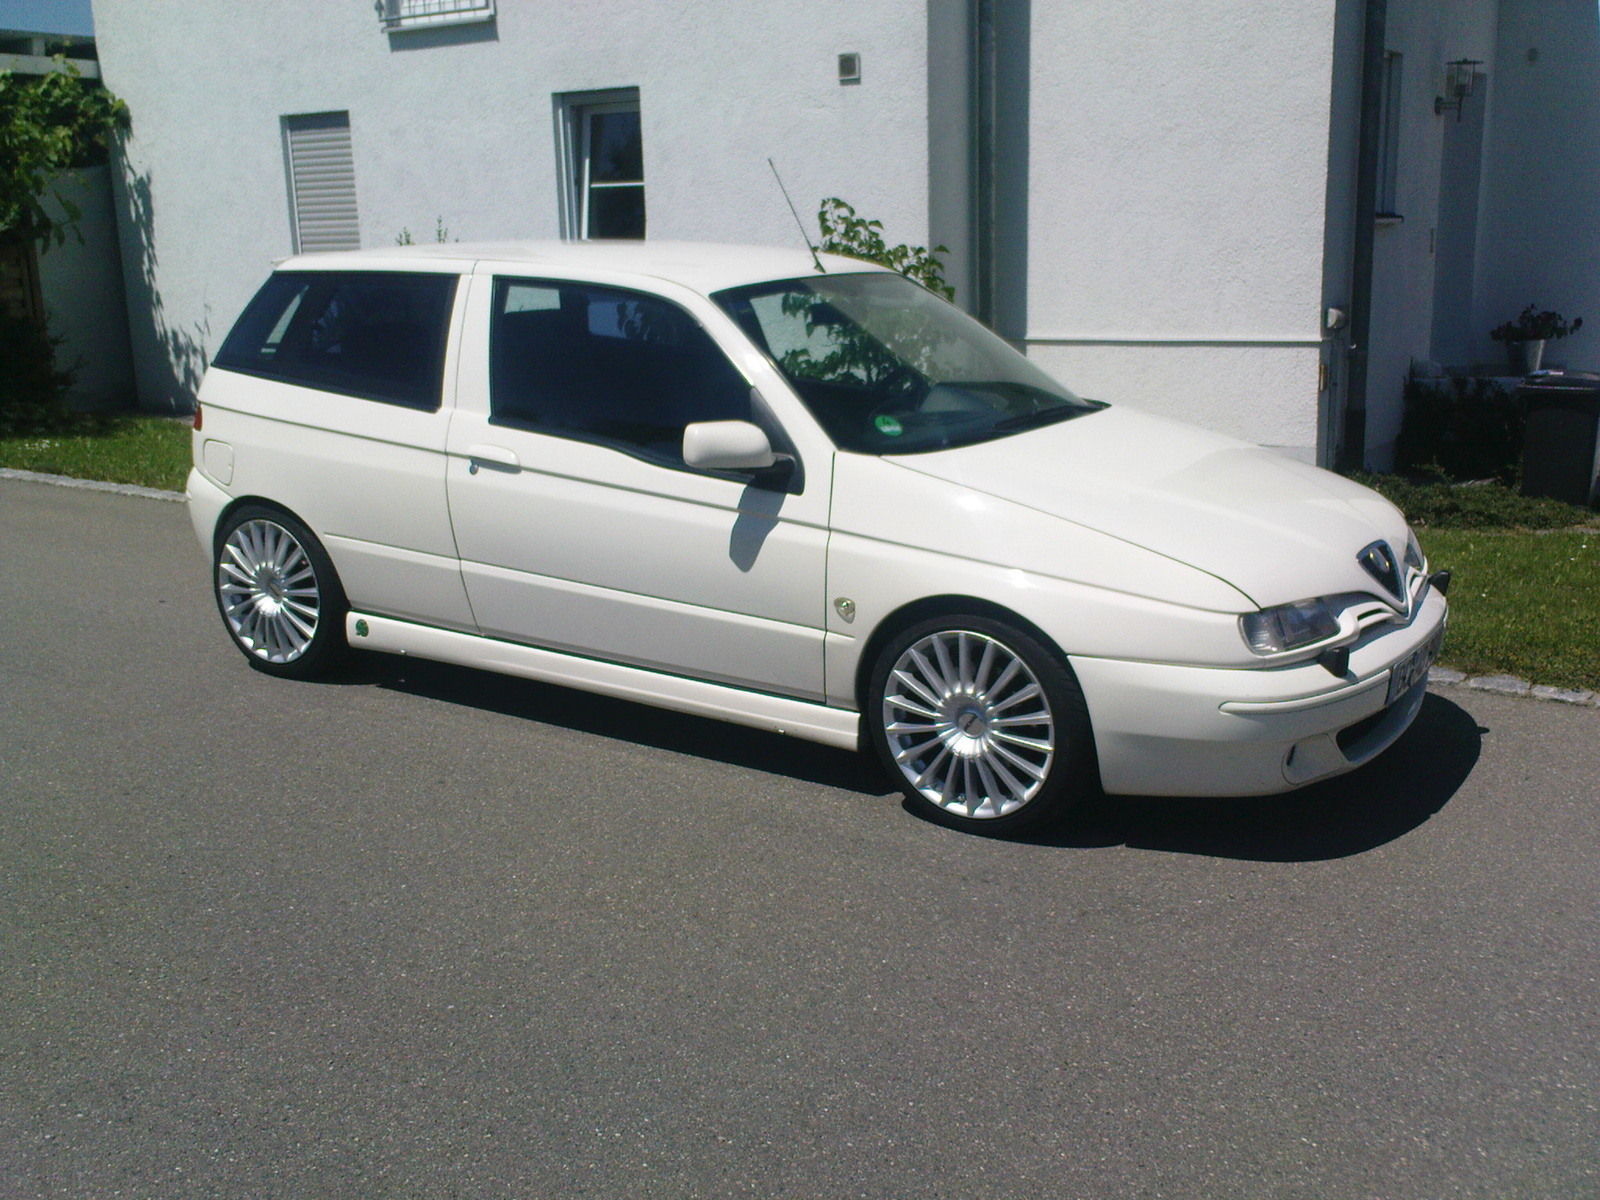 Alfa-Romeo 145 photo 08